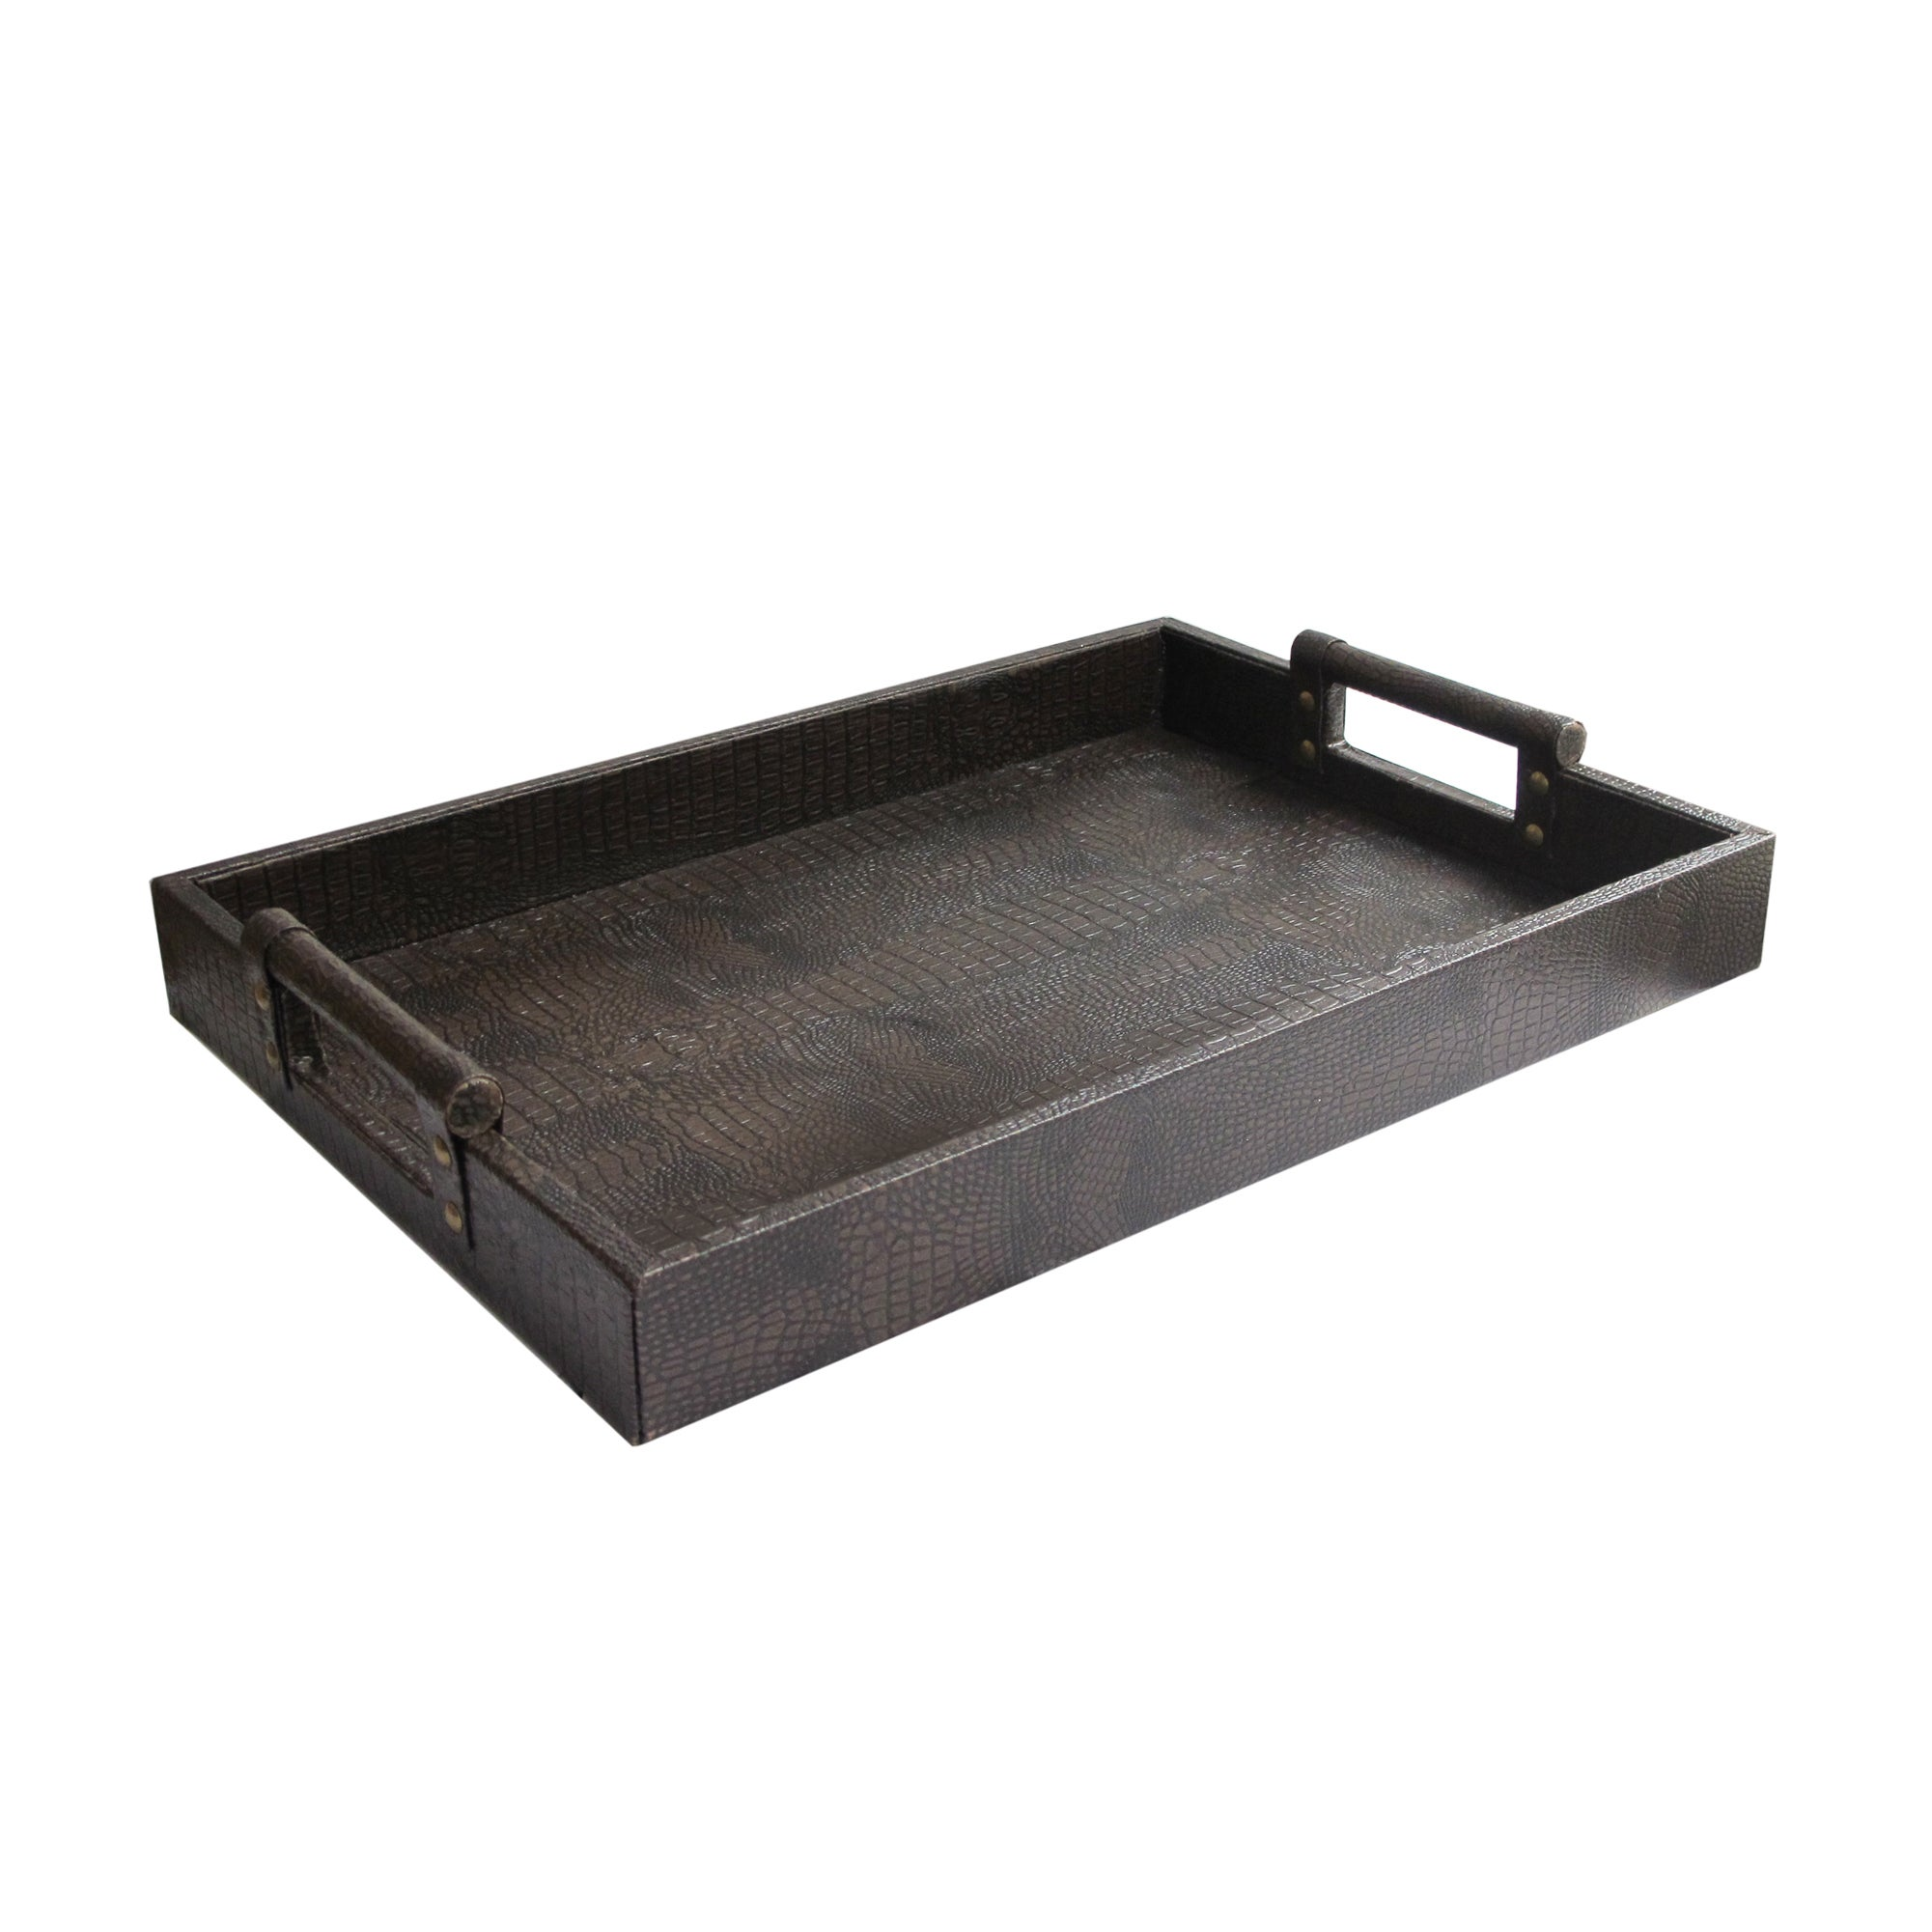 Brown Leather Serving Tray With Handles